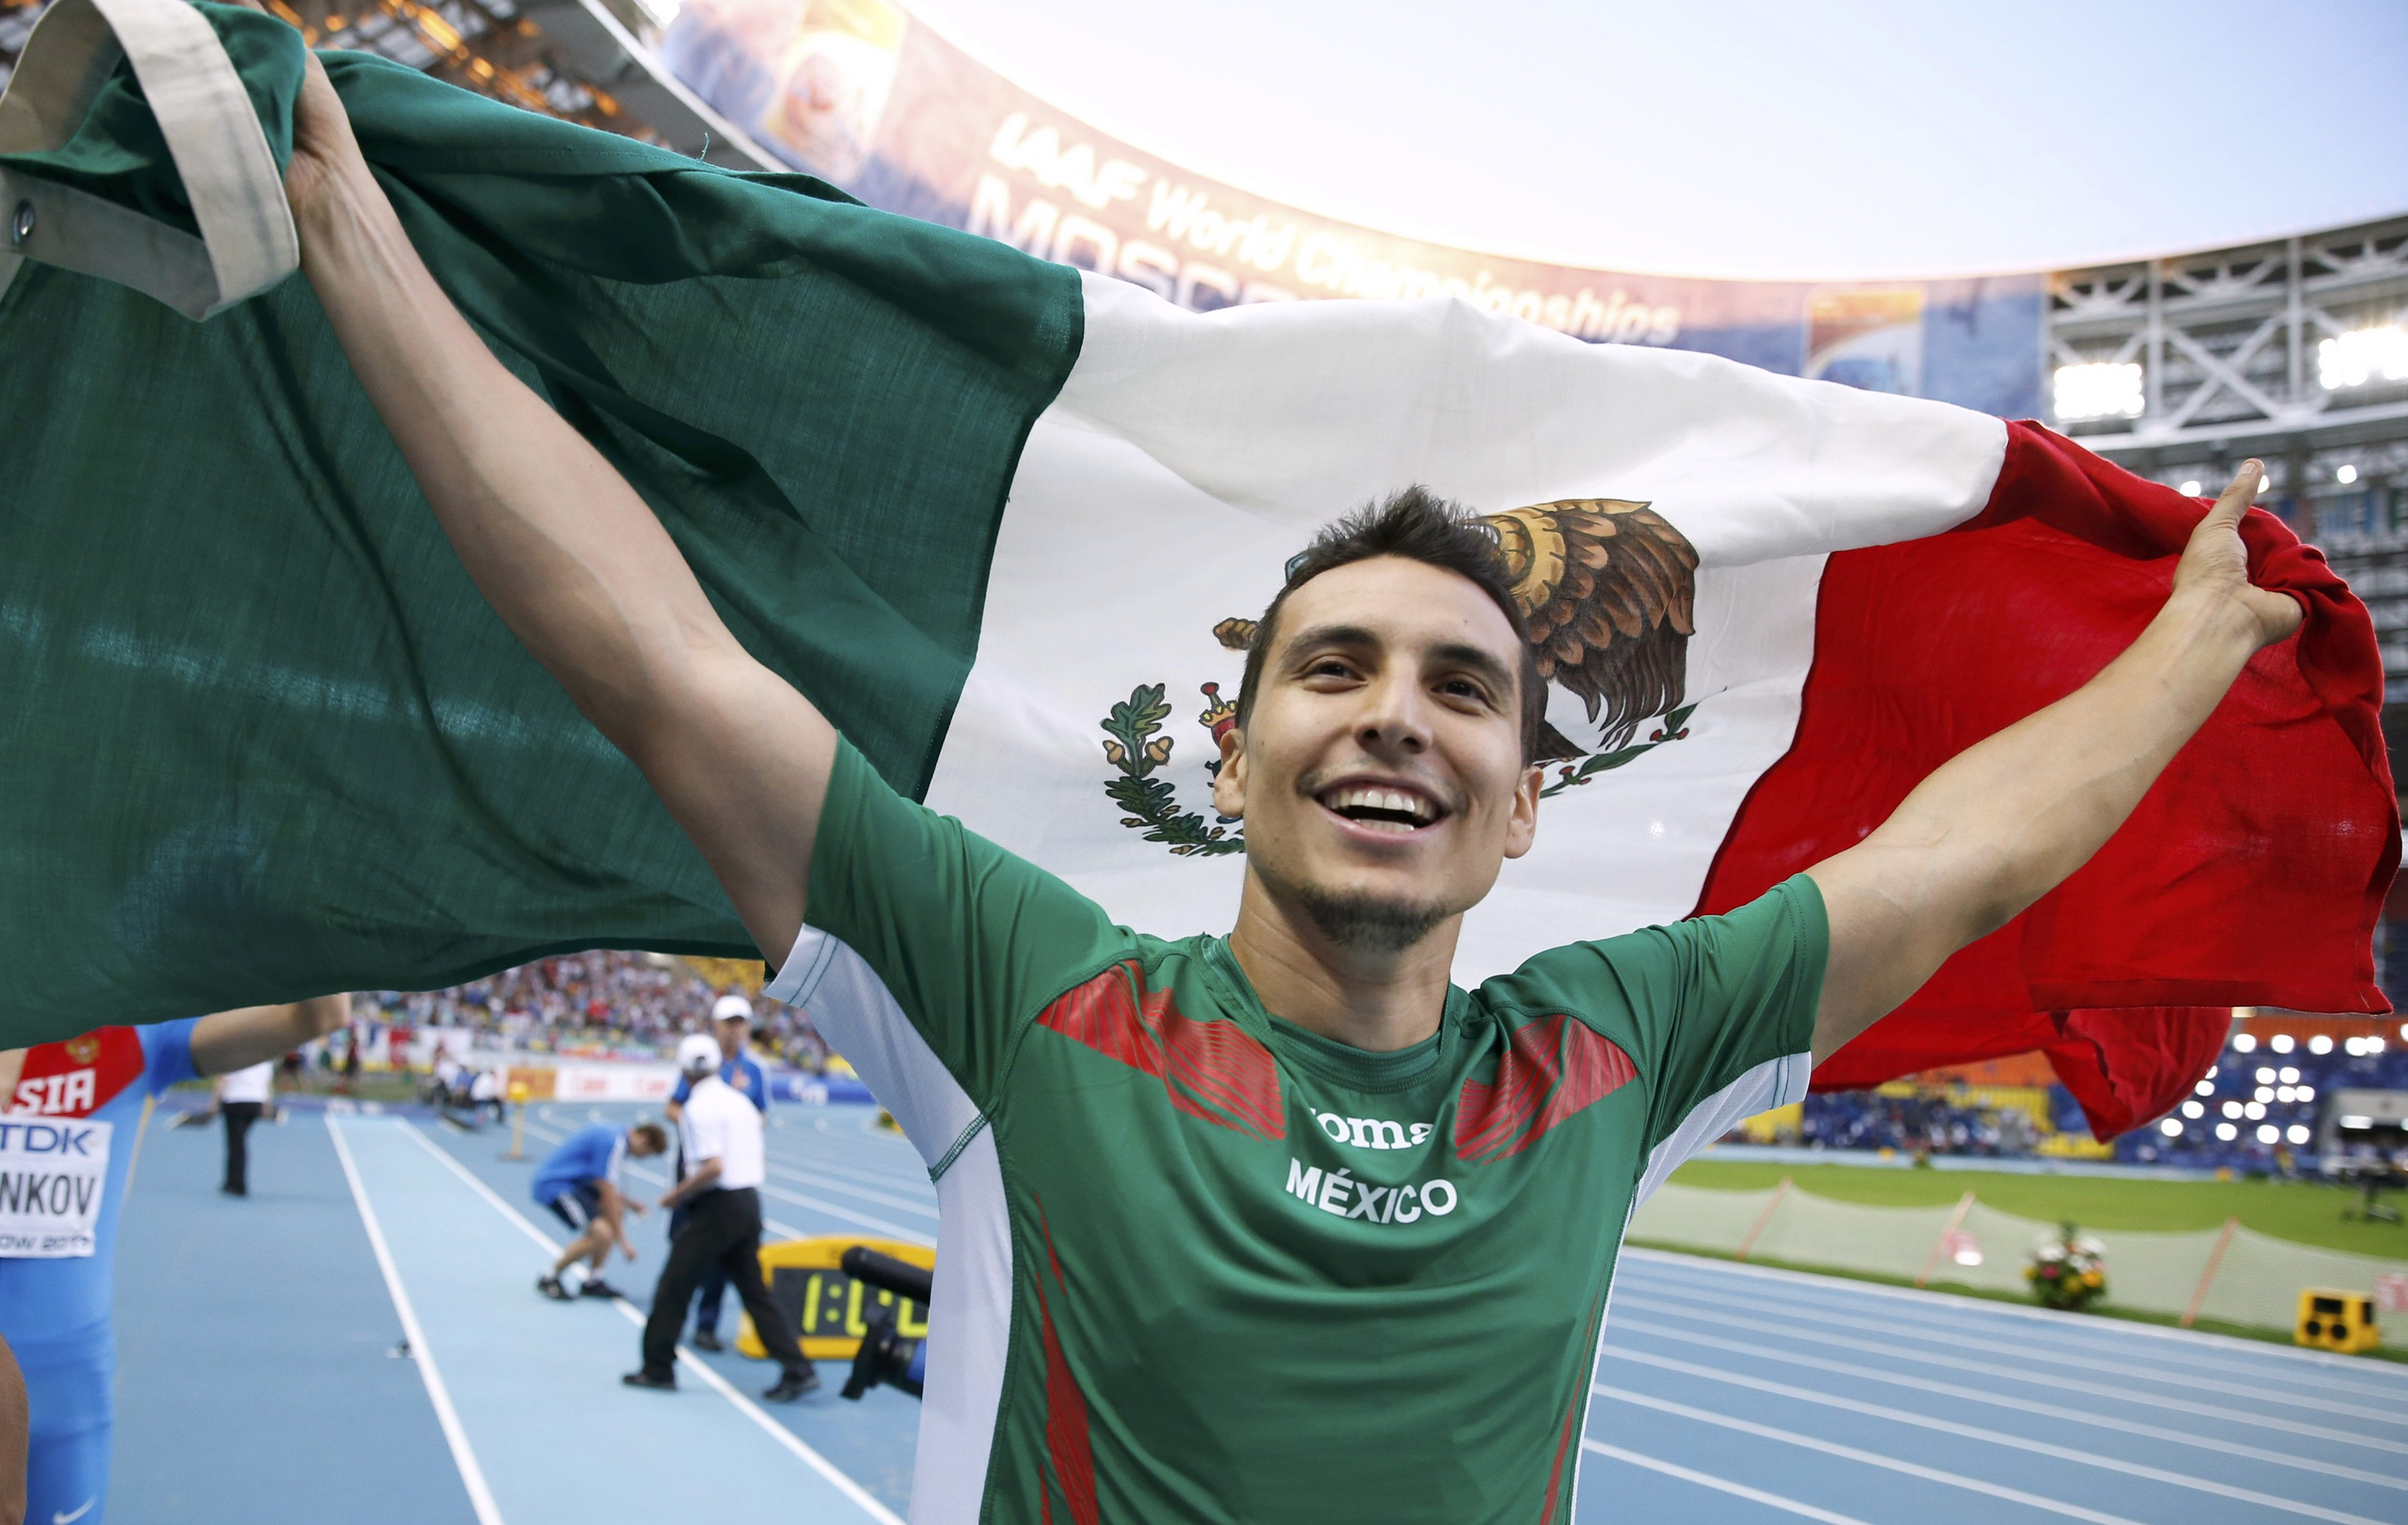 A Pair of Brothers From Mexico Pursue Olympic Glory in This Inspiring Documentary